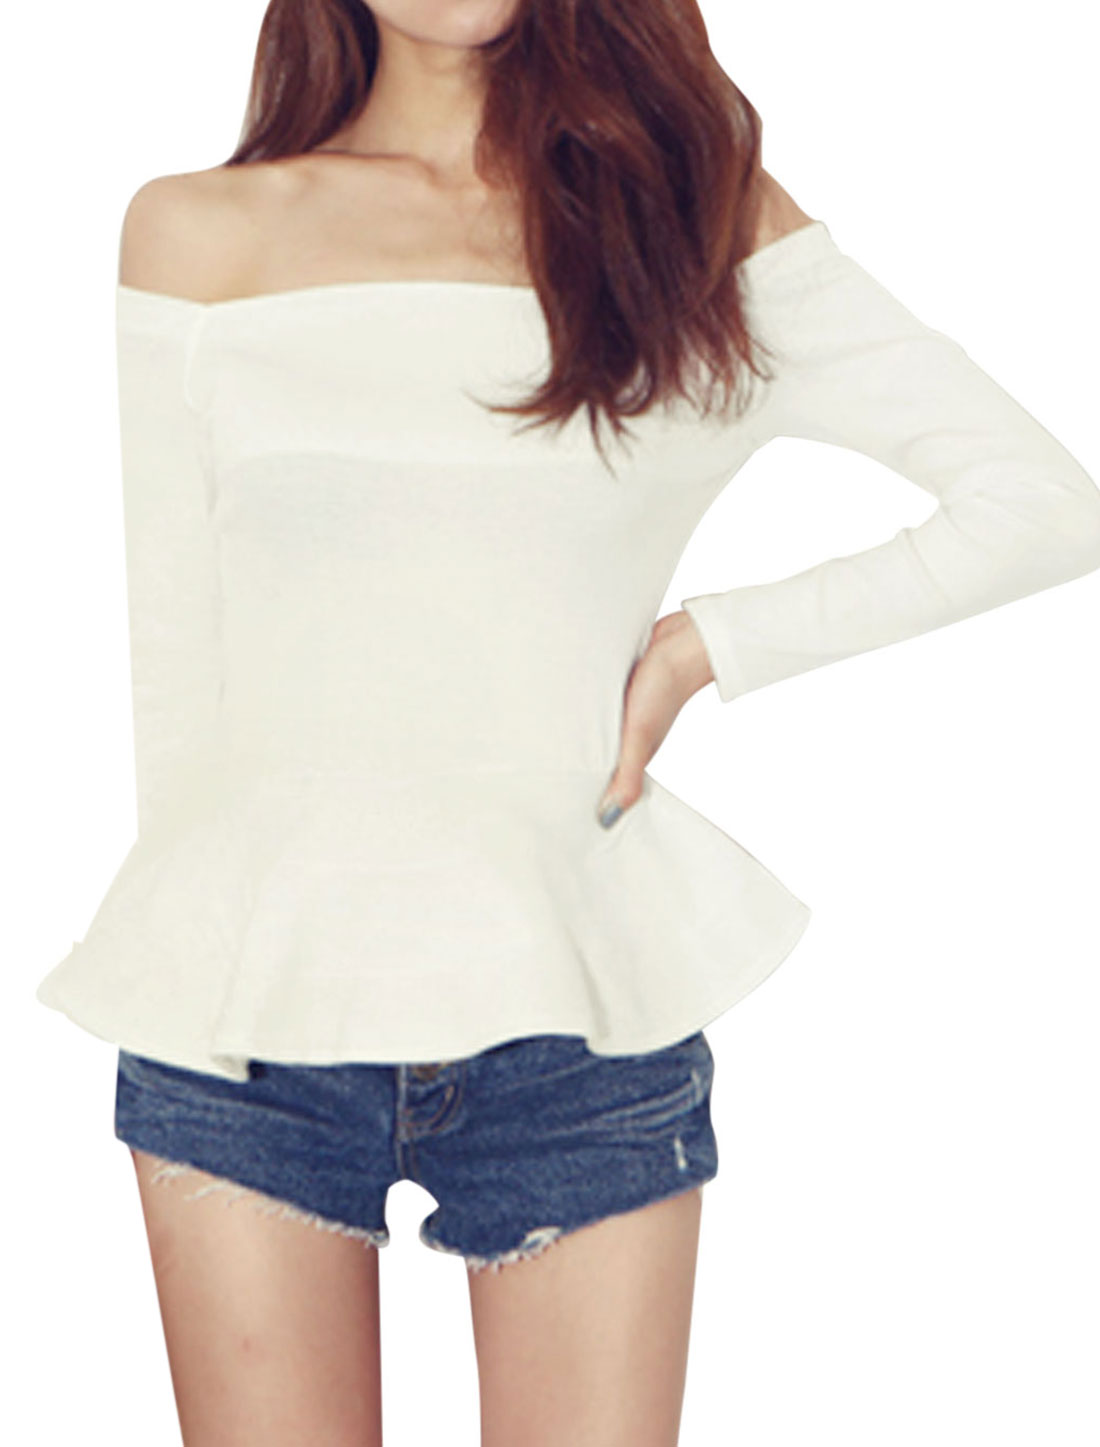 Lady Off Shoulder Slim Fit Peplum Top White XS